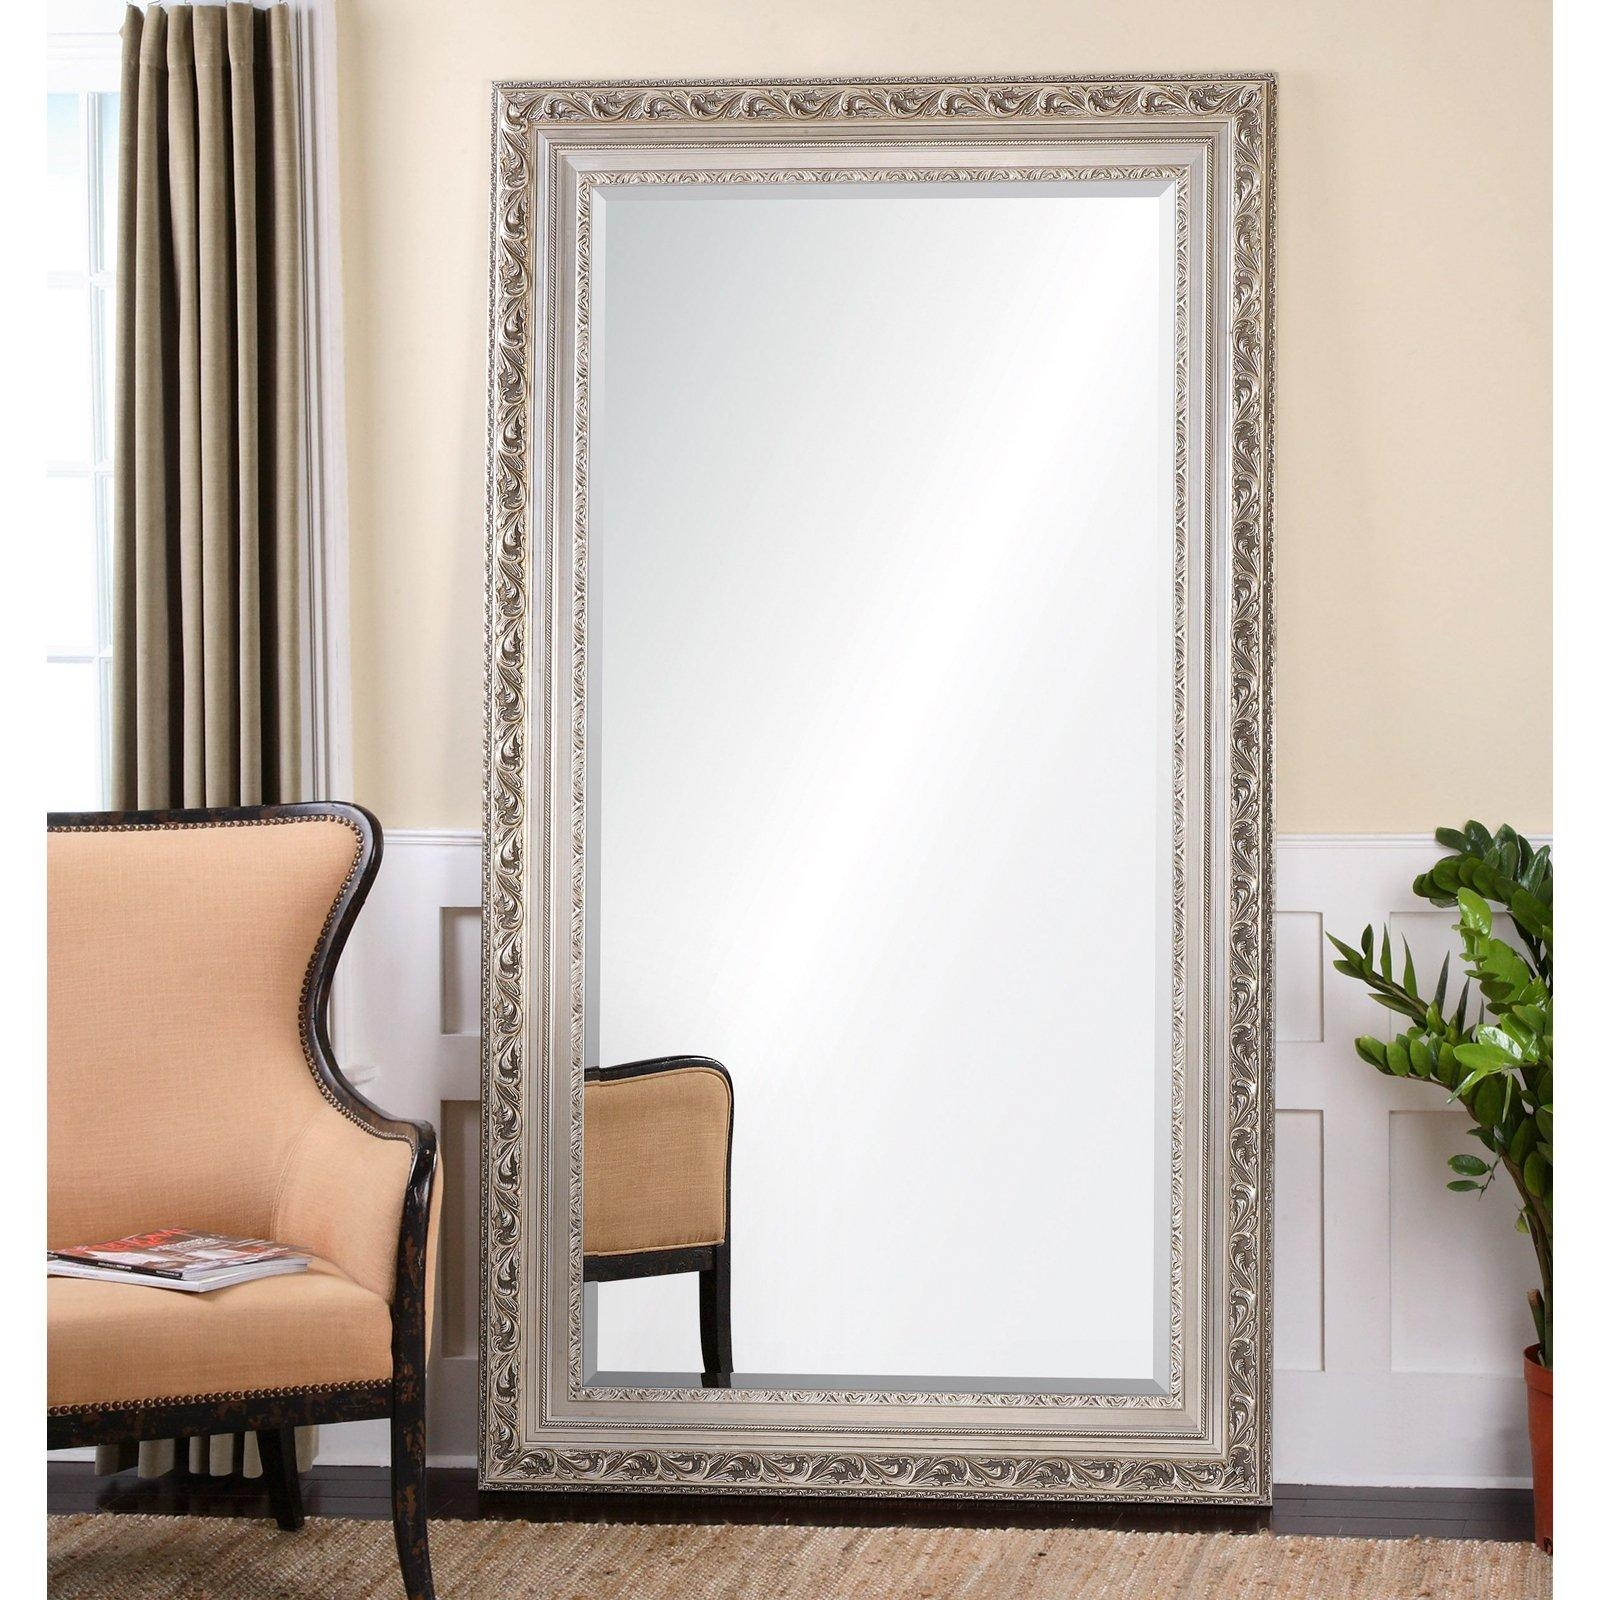 Cheap Extra Large Floor Mirrors | Floor Decoration Throughout Extra Large Full Length Mirror (Image 8 of 20)